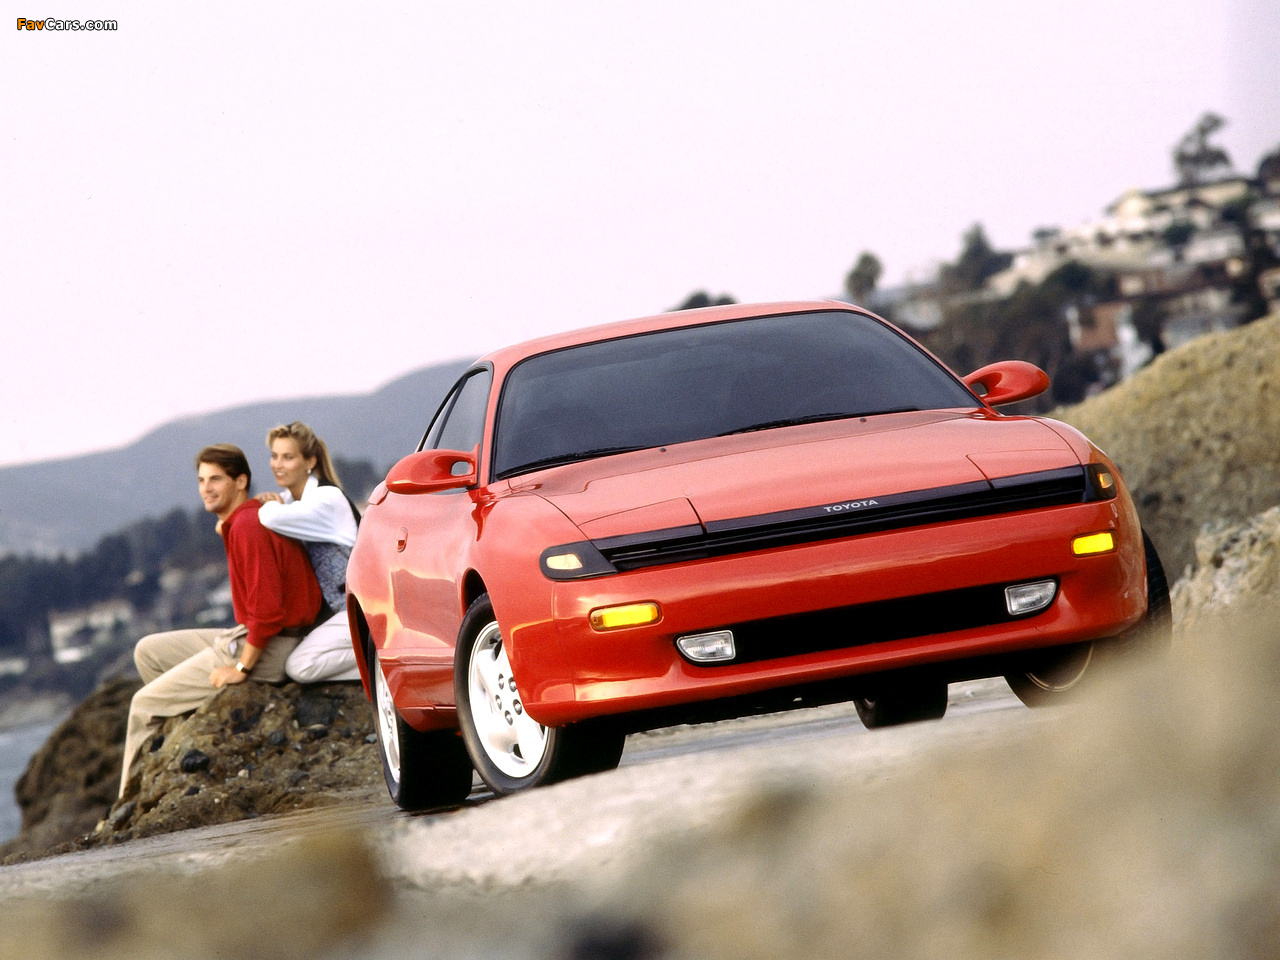 Toyota toyota celica 92 : My perfect Toyota Celica GT-Four. 3DTuning - probably the best car ...